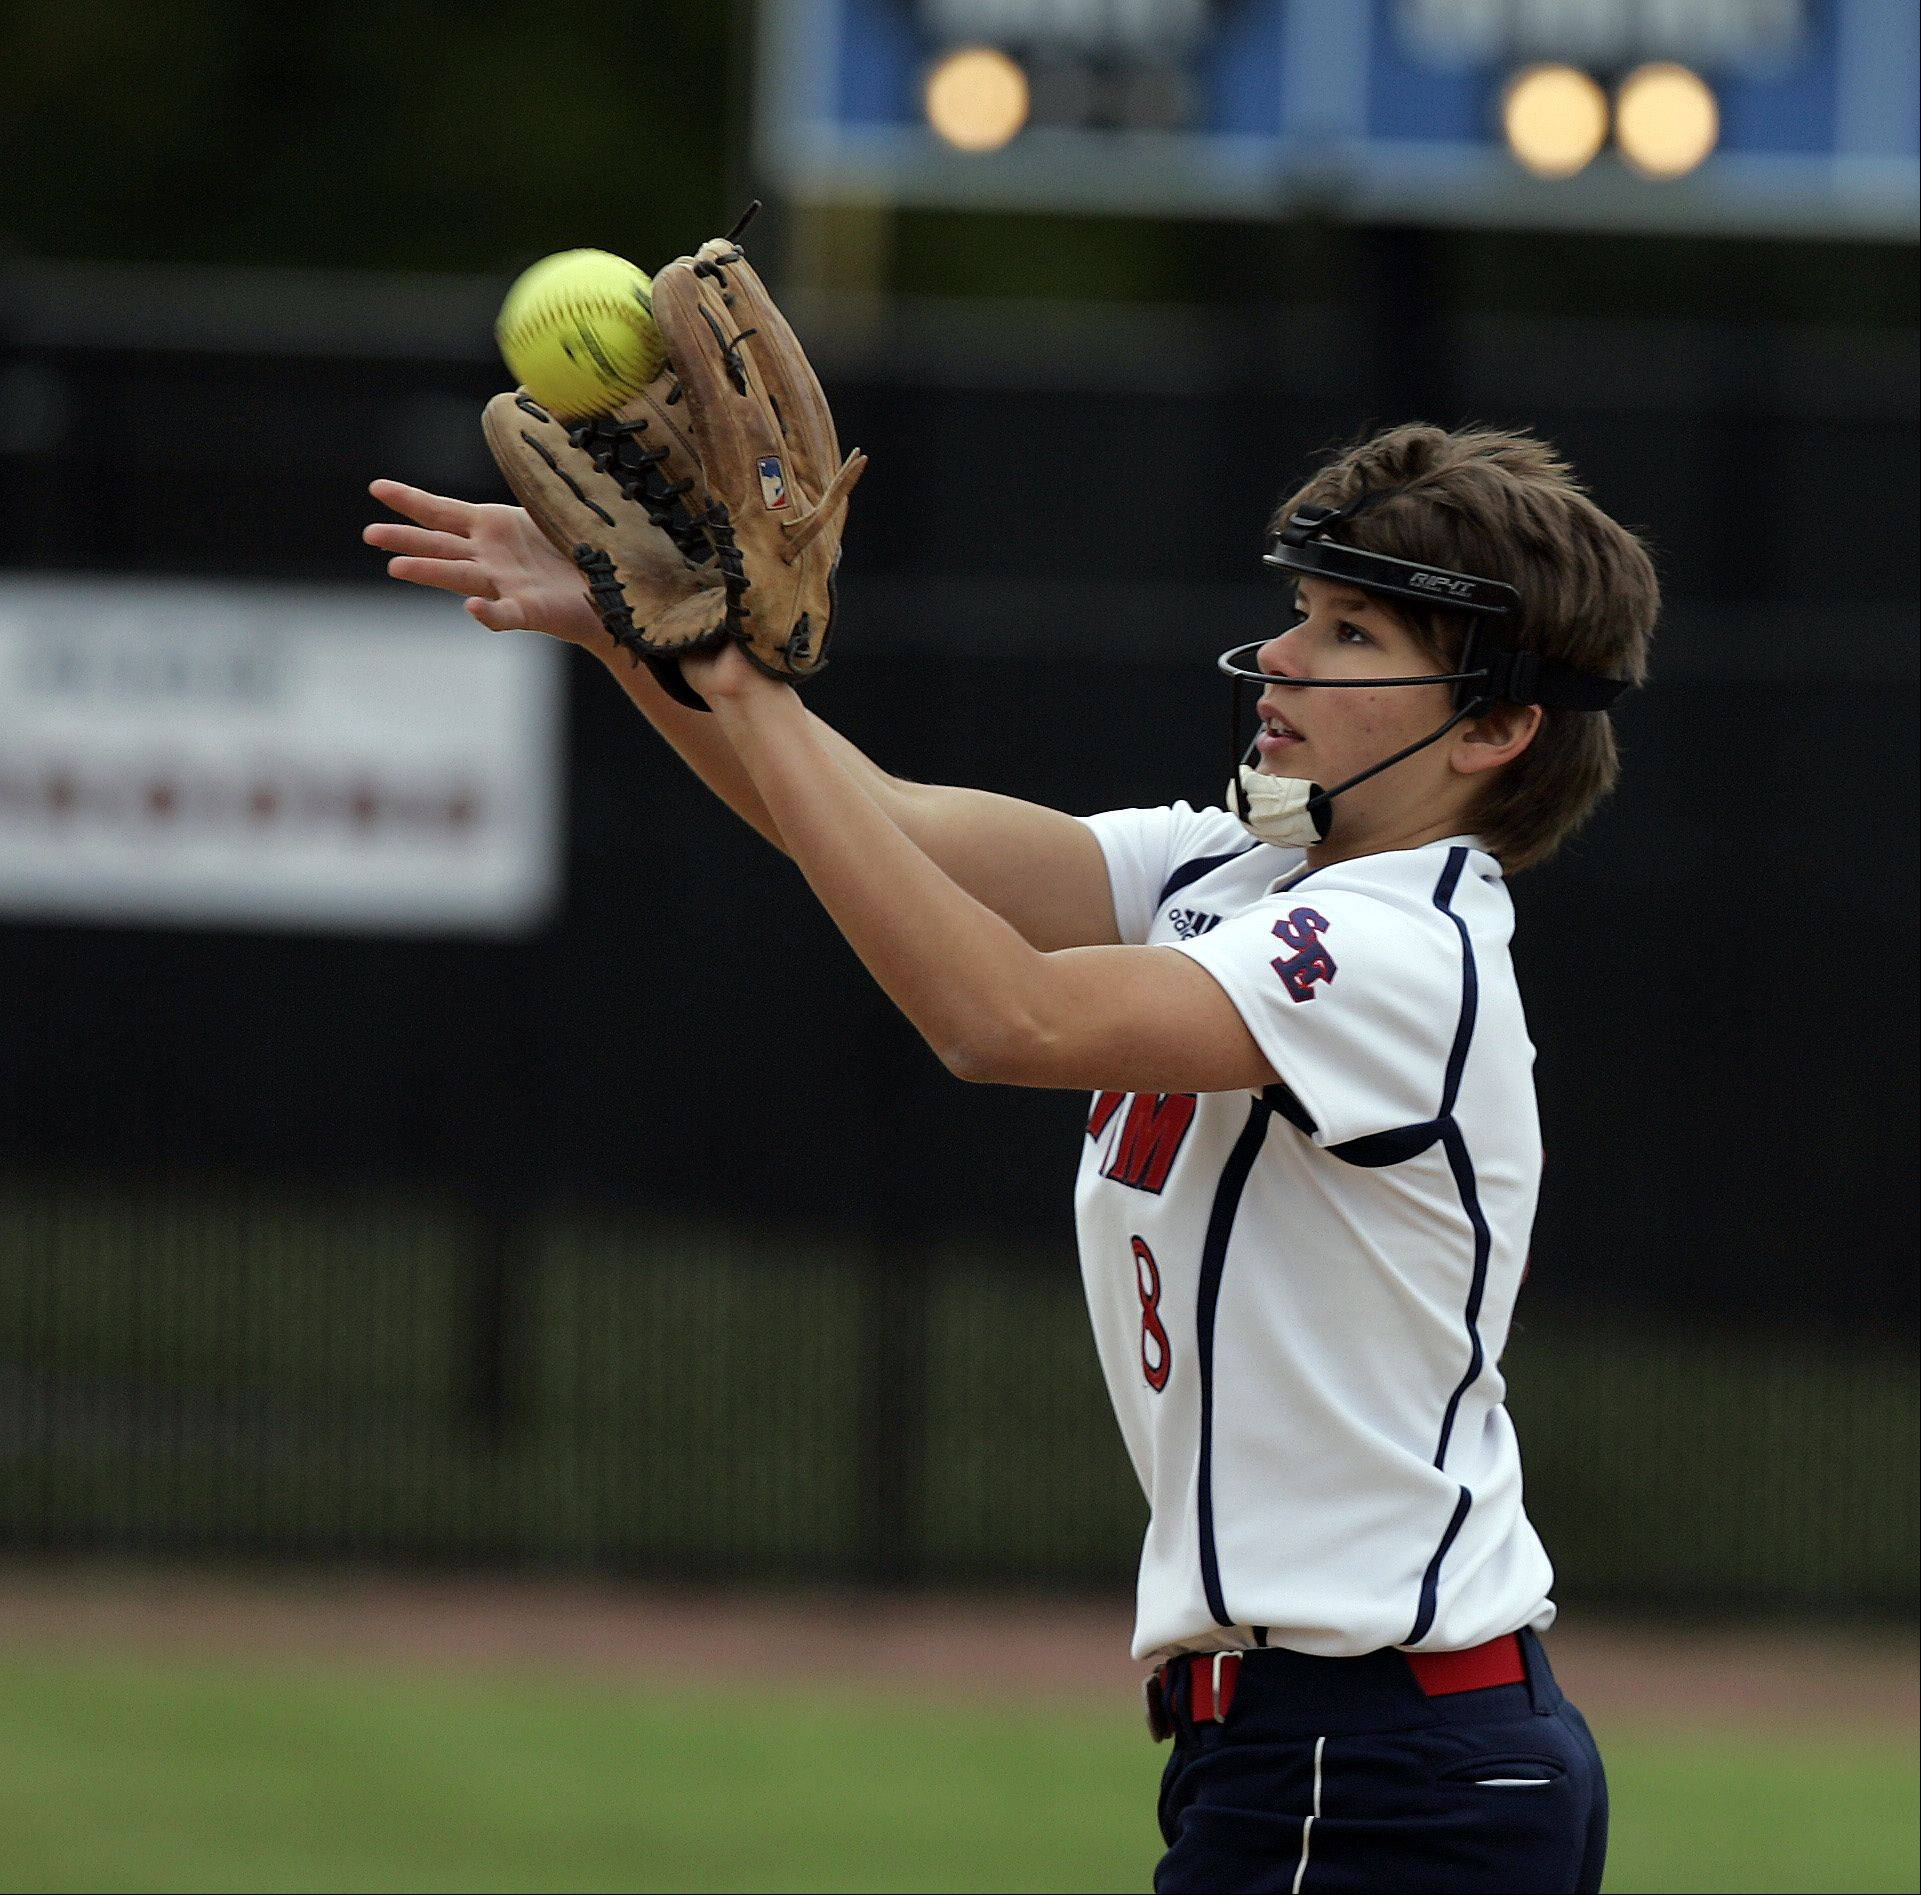 South Elgin senior Victoria Watt reels in a line drive during the Storm�s 2-1 win over St. Charles North Saturday in St. Charles.